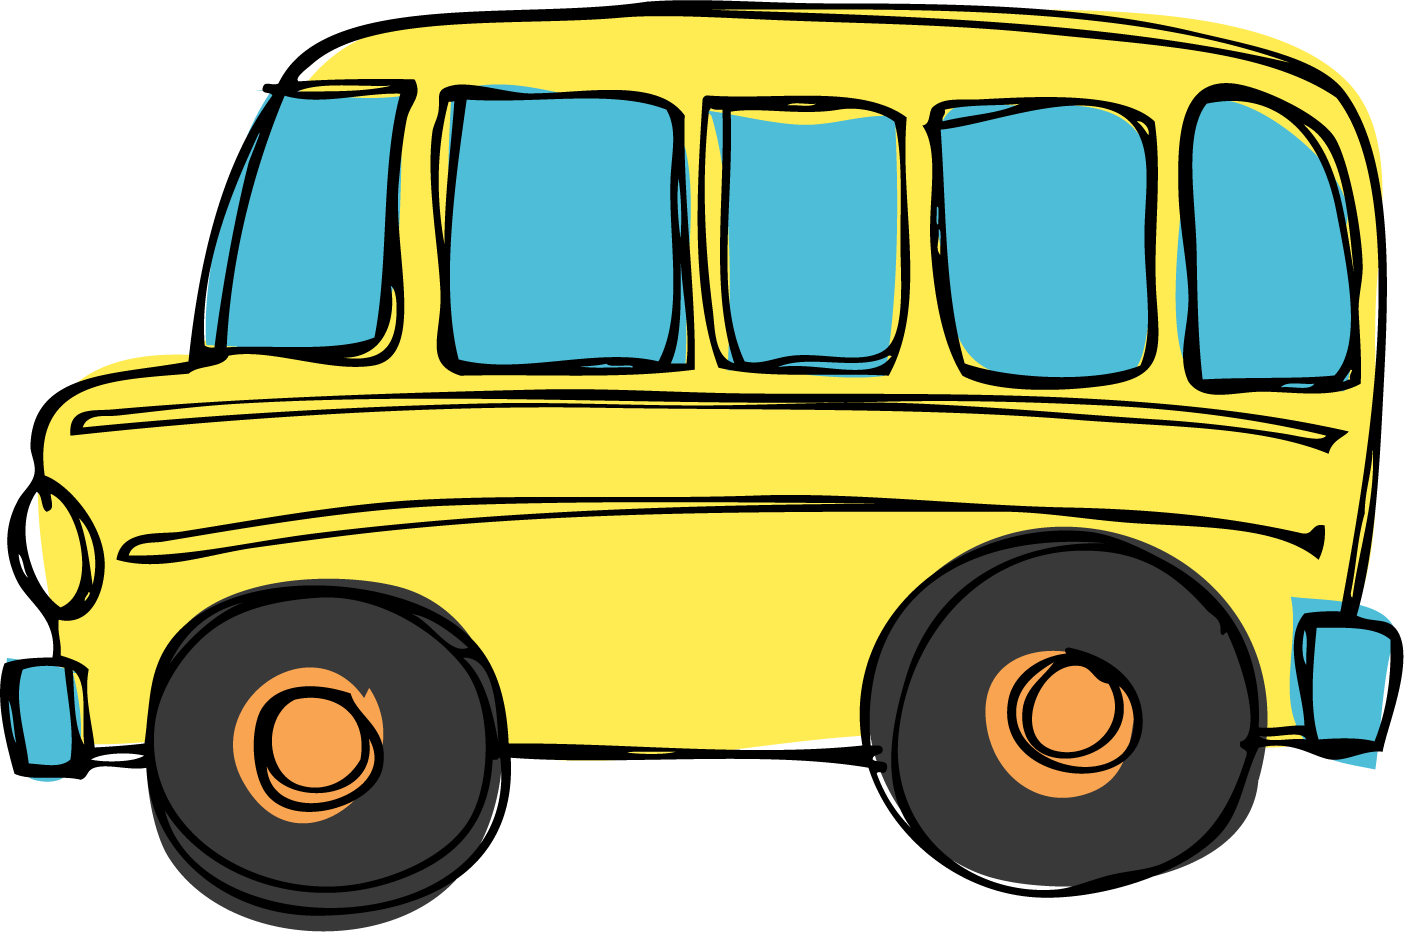 1404x932 Travel School Bus Clipart Explore Pictures